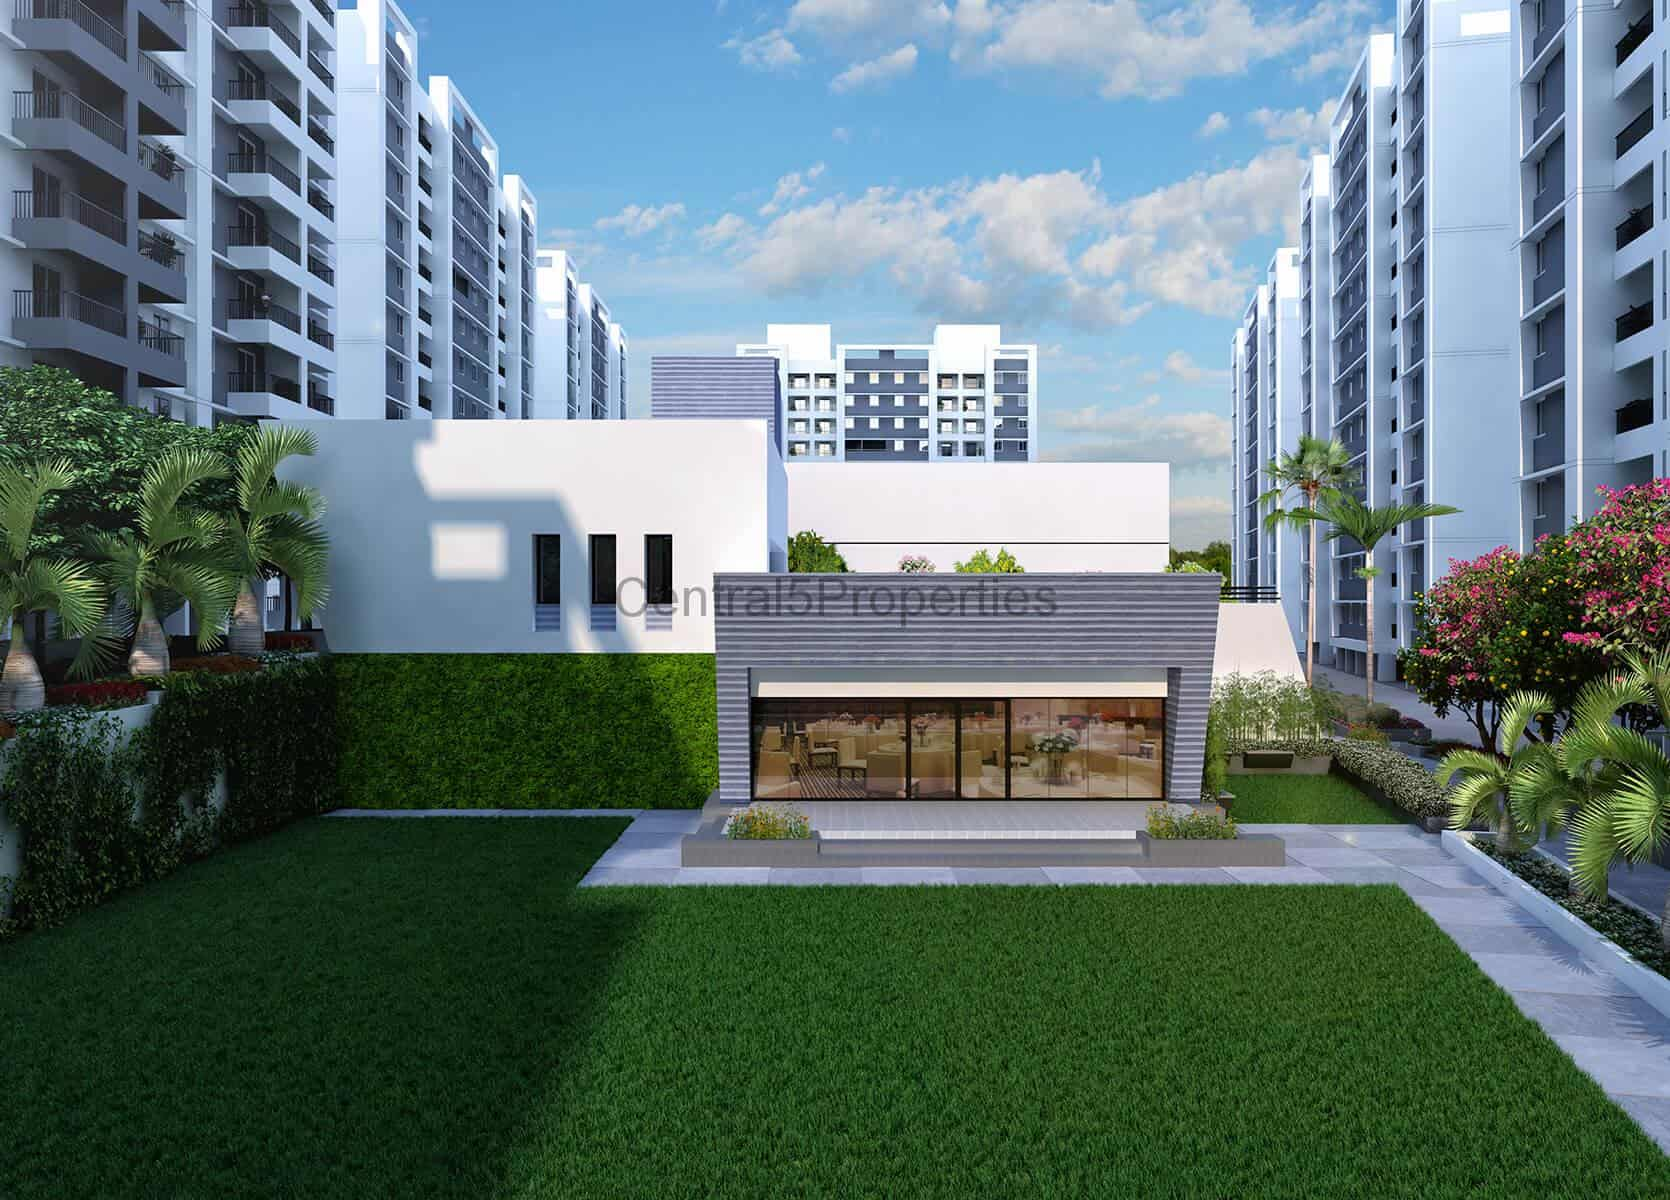 2BHK Flat for sale in Wagholi Pune